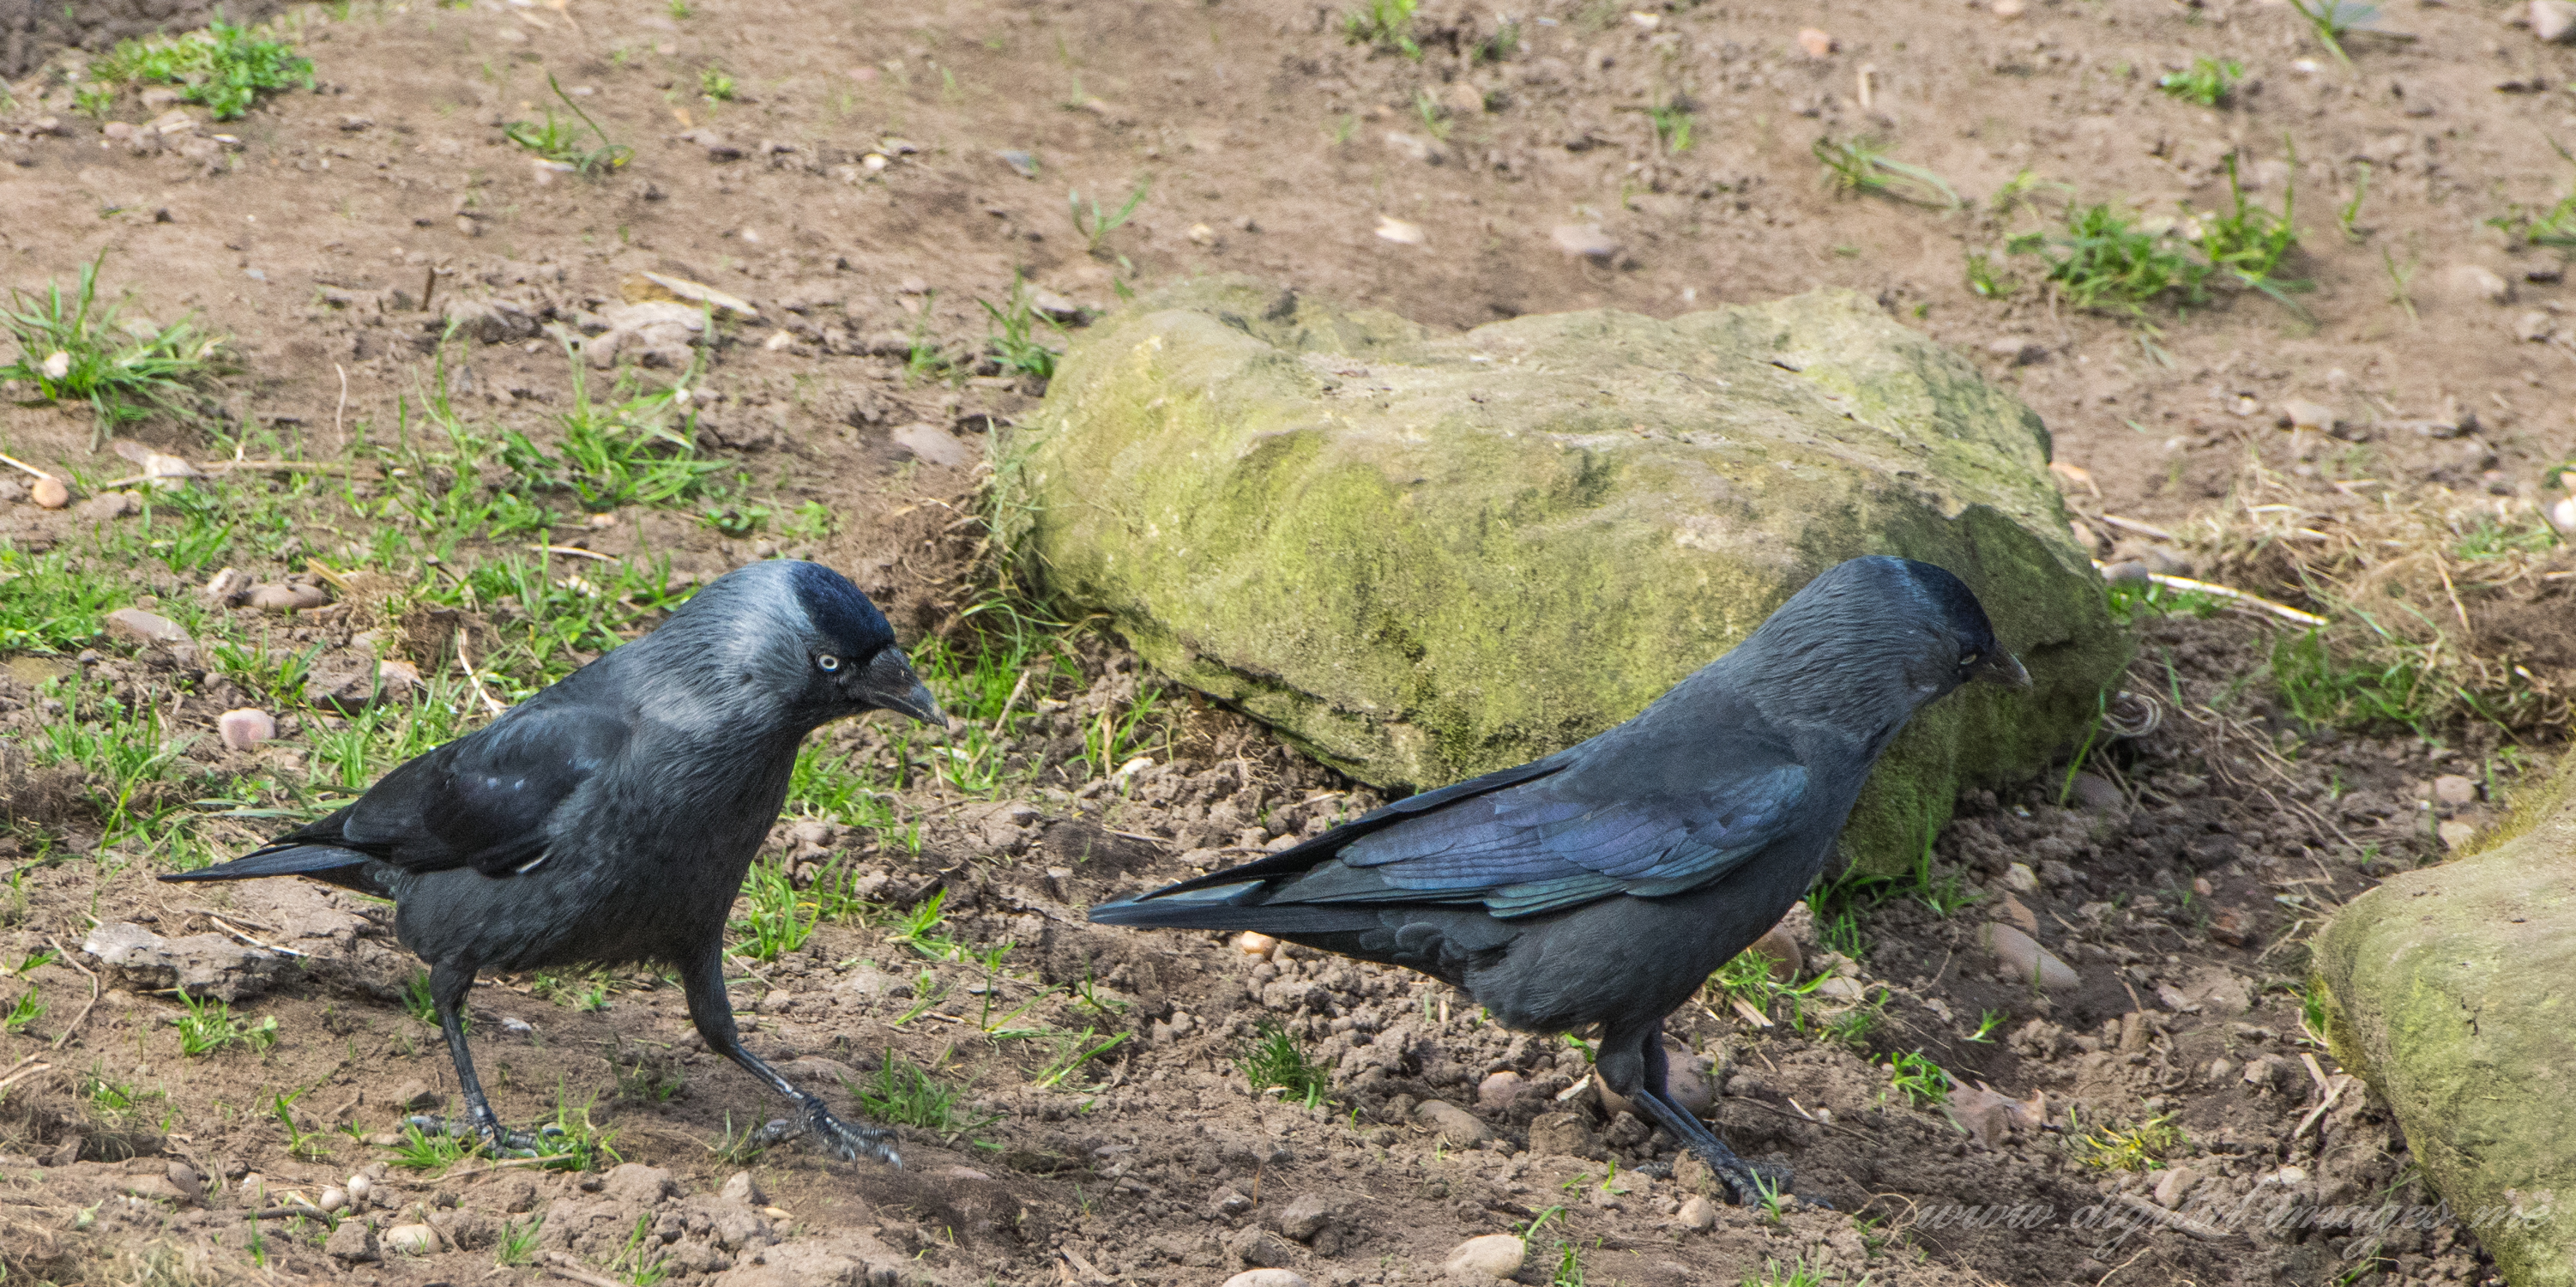 Jackdaws at the Wildlife Park